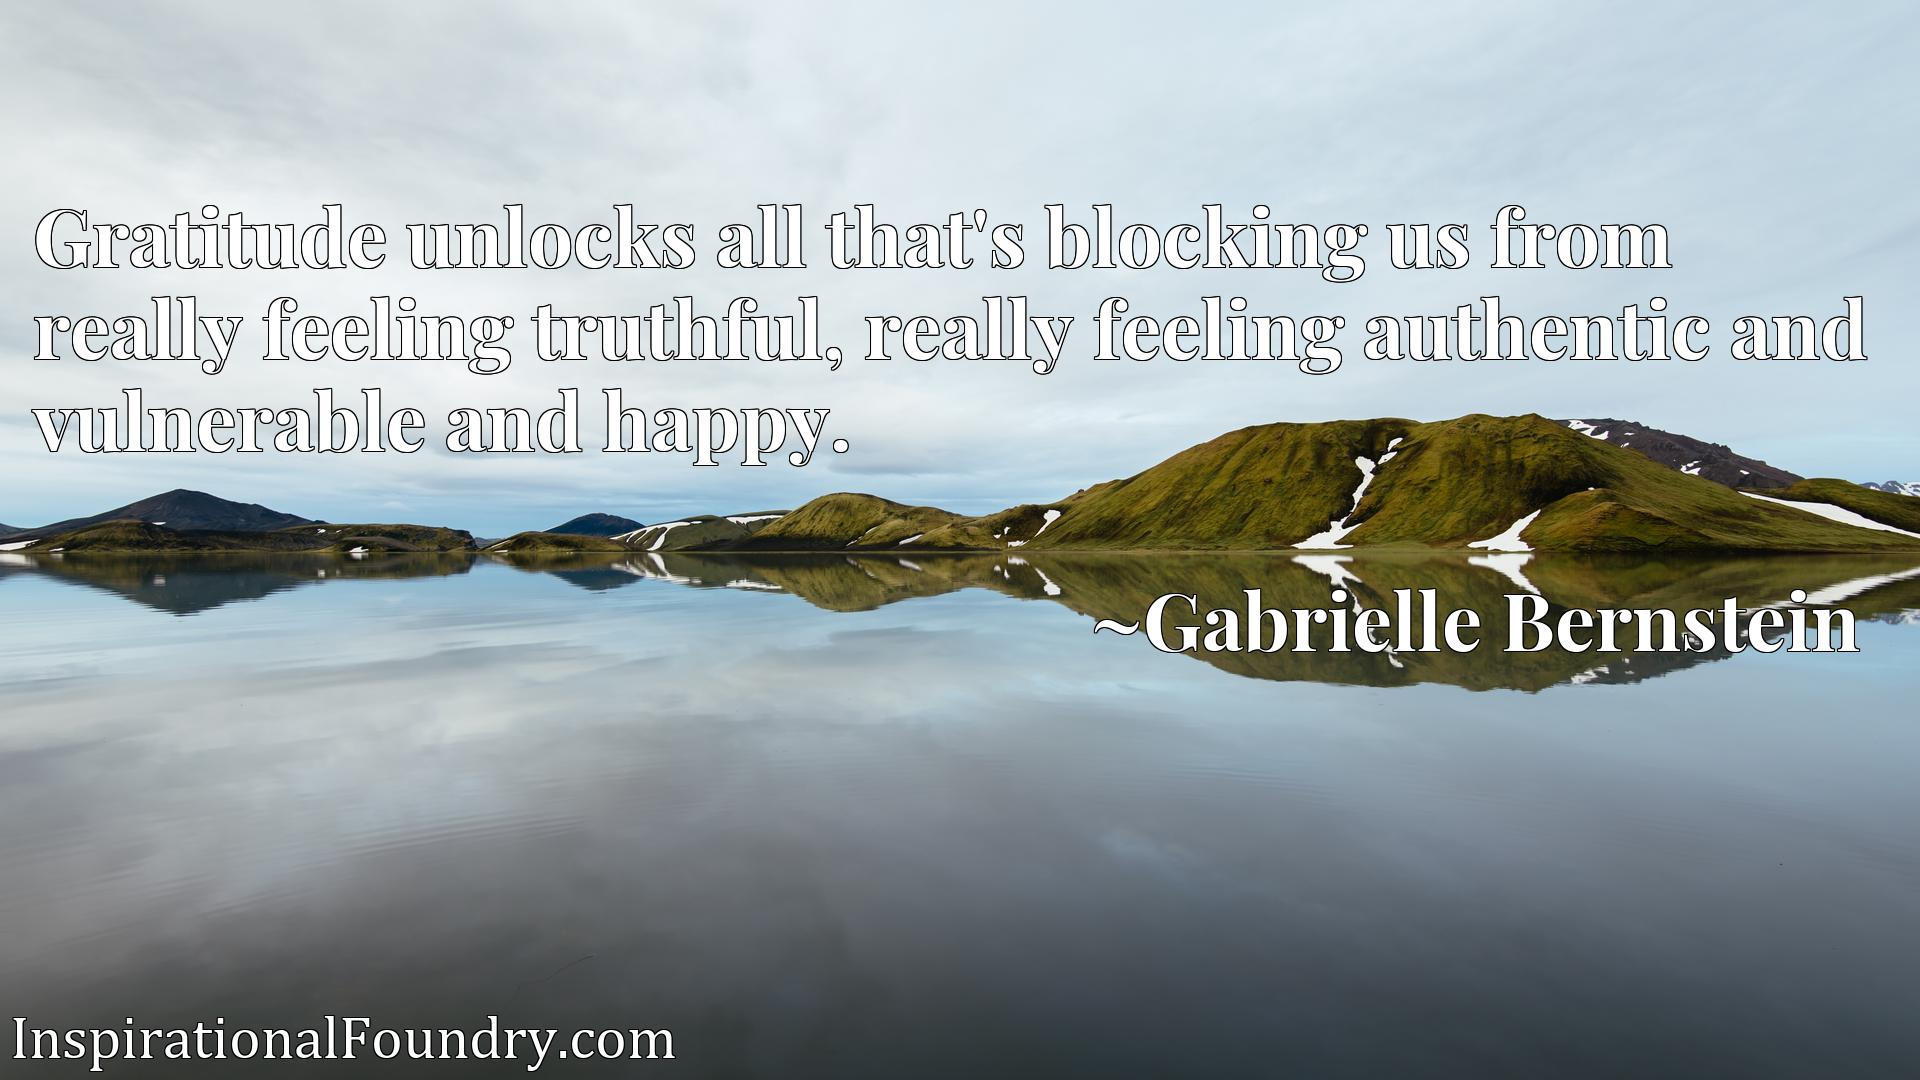 Gratitude unlocks all that's blocking us from really feeling truthful, really feeling authentic and vulnerable and happy.